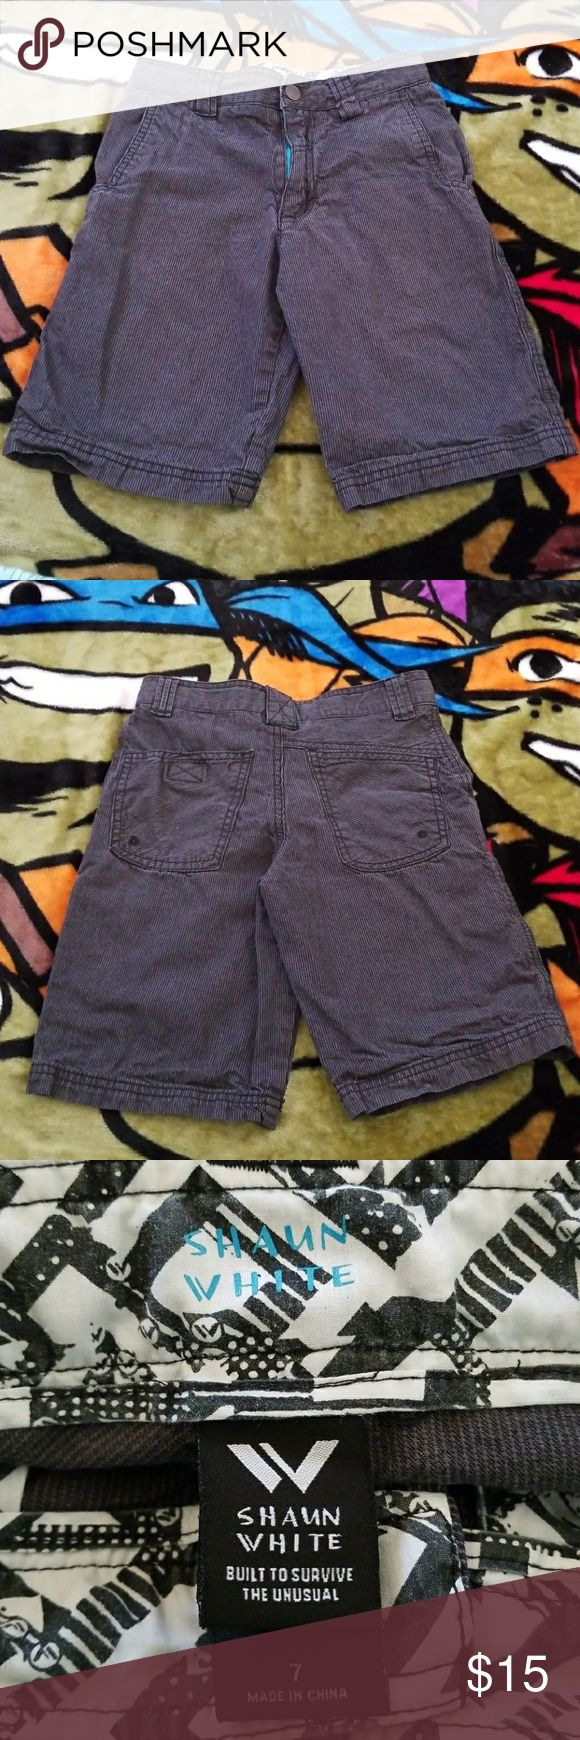 Boys Size 7 Shaun White pinstripe shorts #boys size 7 #Shaunwhite #black & #grey #gray #pinstripe #shorts with adjustable waist.  #adjustablewaist Used but in excellent condition,  no signs of wear, holes or fading. #Comfortable & #Lightweight. 100% cotton. #cotton #100%cotton Shaun White Bottoms Shorts